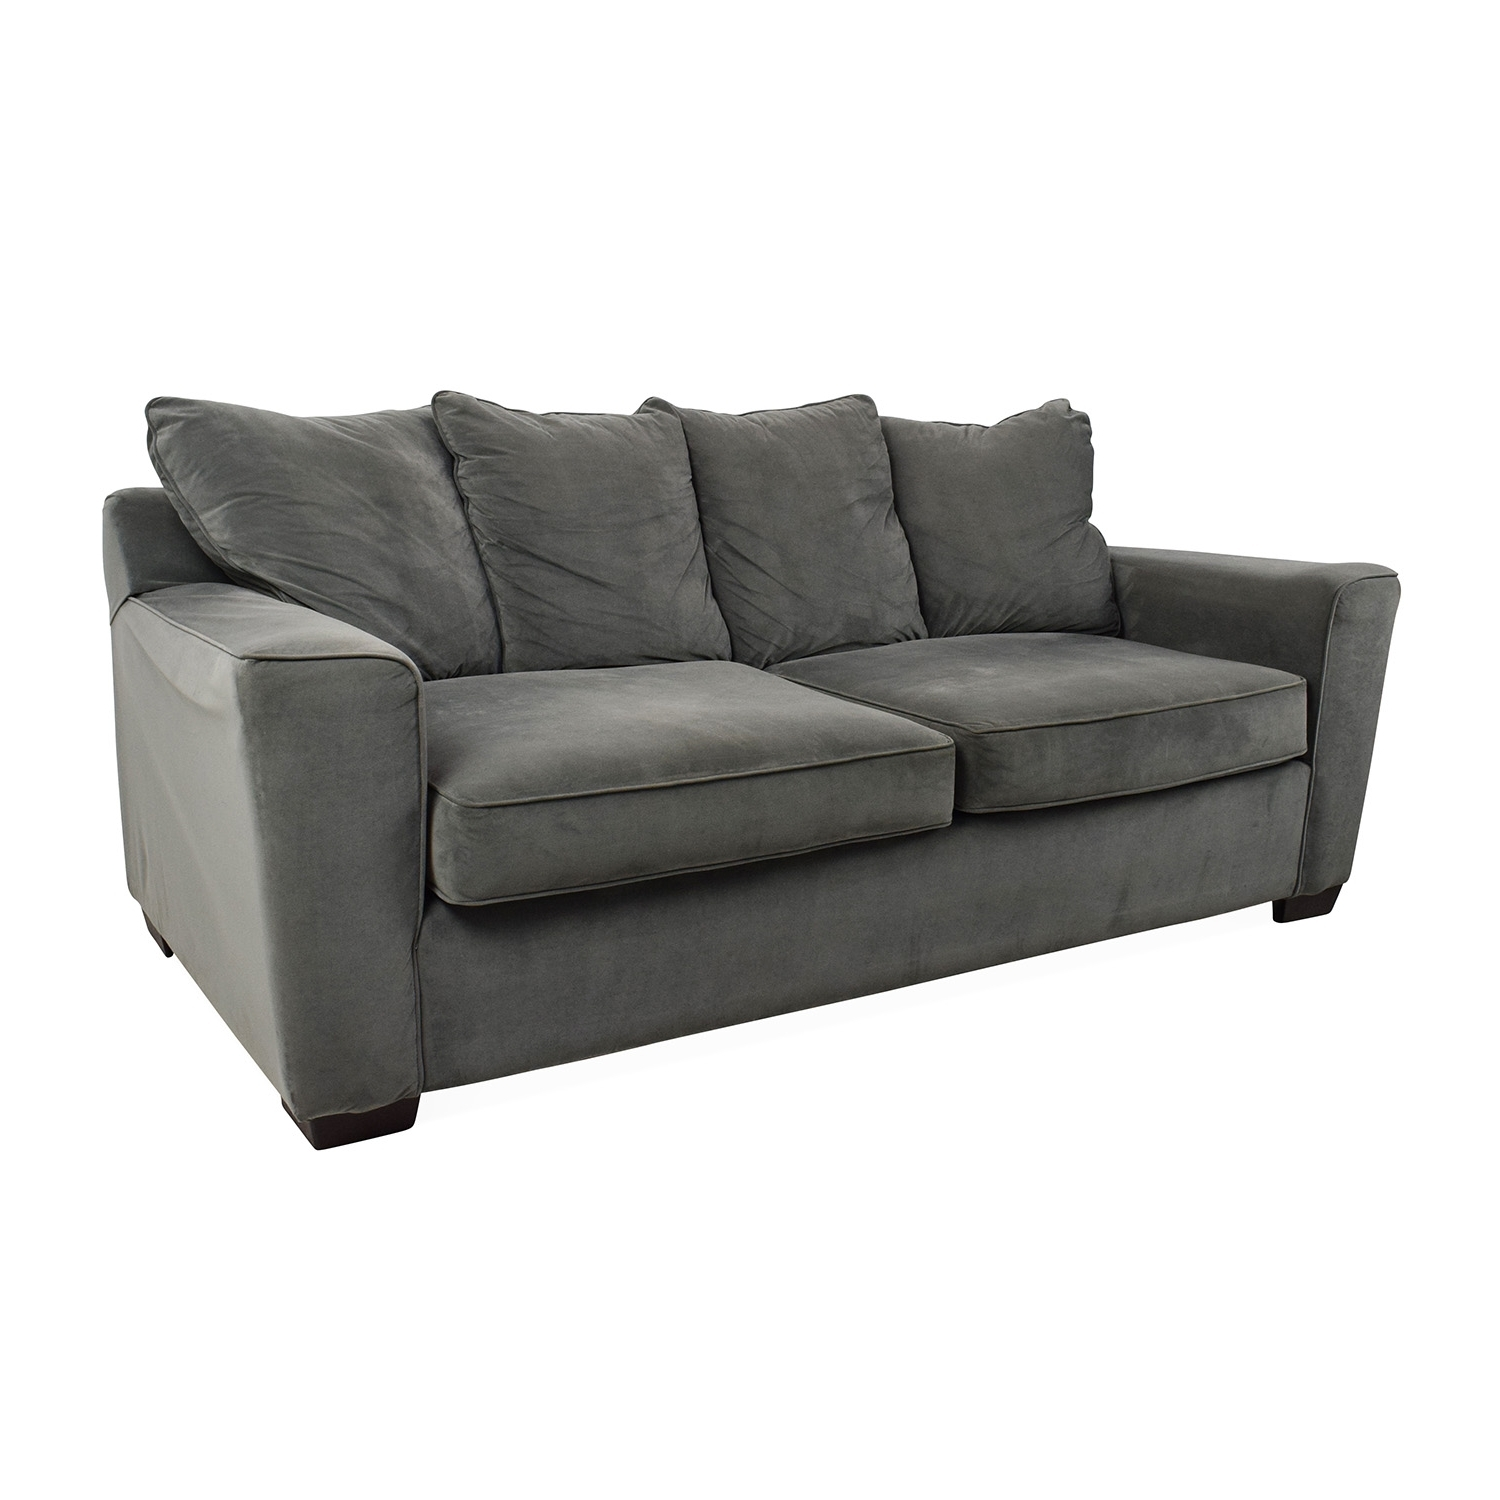 [%53% Off – Jennifer Convertibles Jennifer Convertibles Grey Couch With Fashionable Jennifer Sofas|Jennifer Sofas Intended For Best And Newest 53% Off – Jennifer Convertibles Jennifer Convertibles Grey Couch|Well Liked Jennifer Sofas With Regard To 53% Off – Jennifer Convertibles Jennifer Convertibles Grey Couch|Well Liked 53% Off – Jennifer Convertibles Jennifer Convertibles Grey Couch With Regard To Jennifer Sofas%] (View 10 of 15)